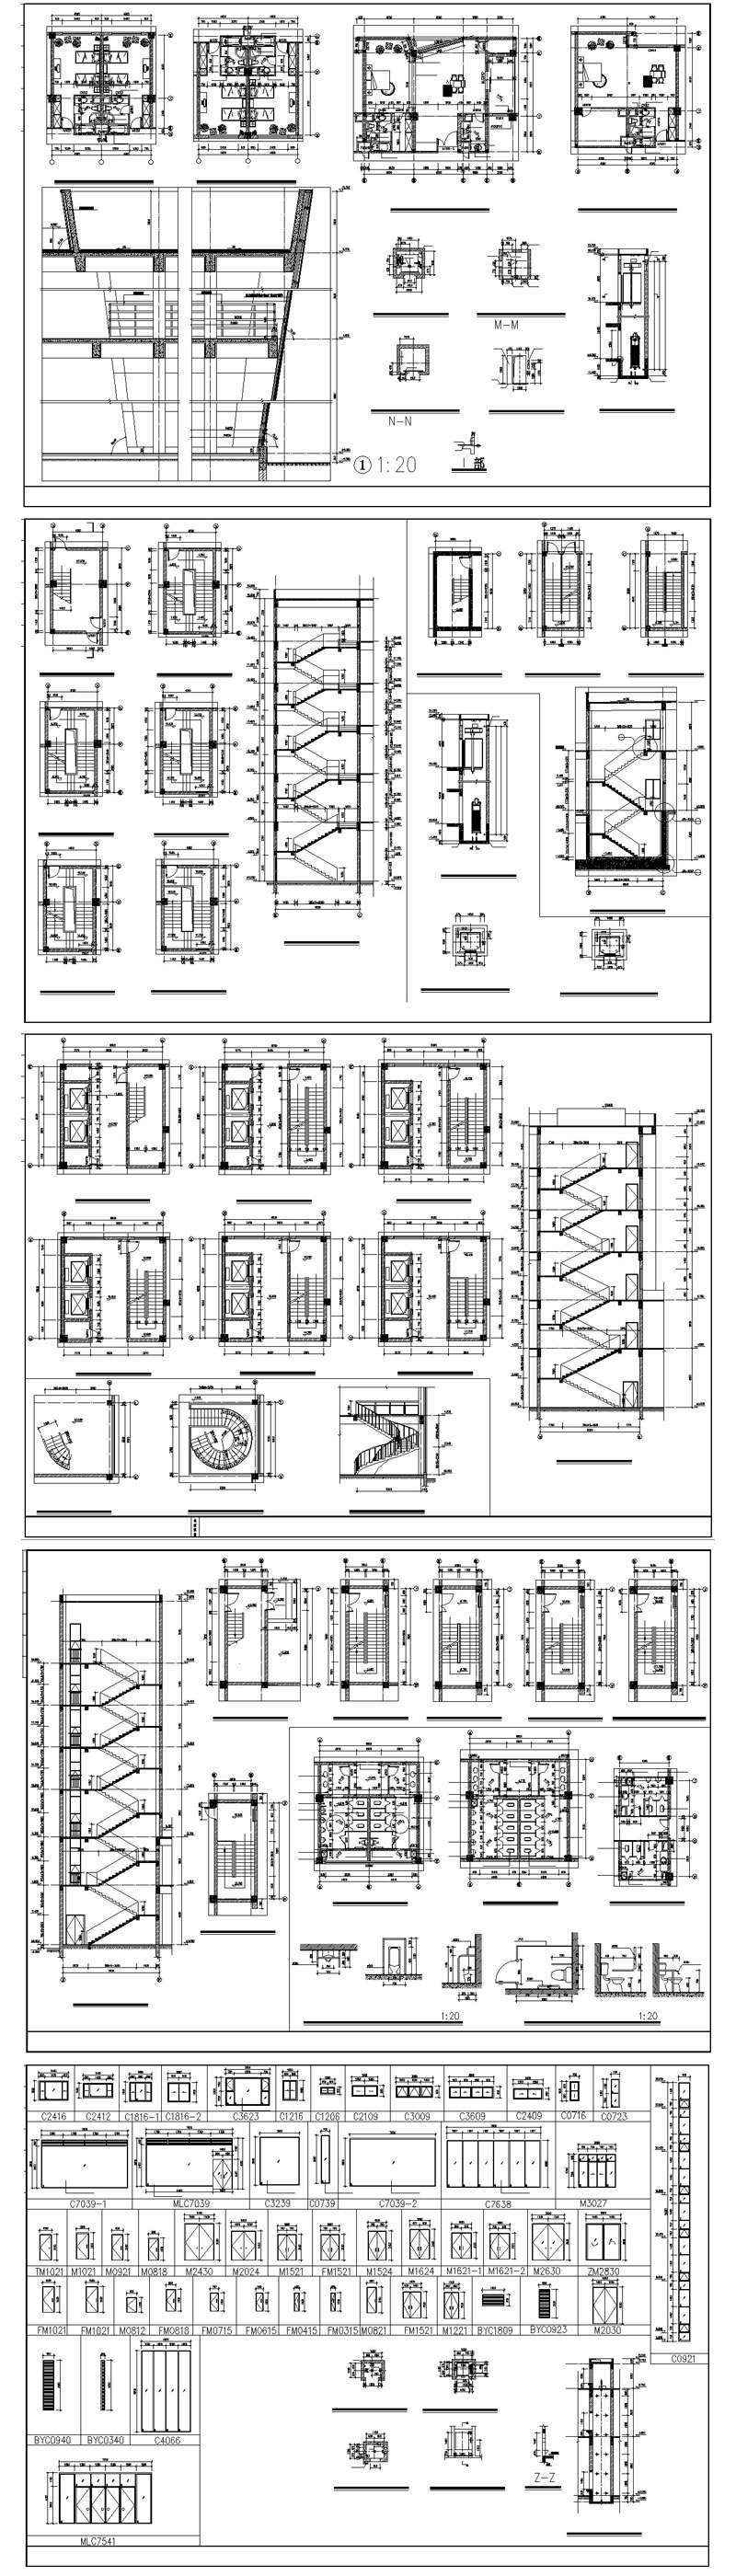 ★【Residential Building CAD Design Collection V.2】Layout,Lobby,Room design,Public facilities,Counter@Autocad Blocks,Drawings,CAD Details,Elevation (Copy)